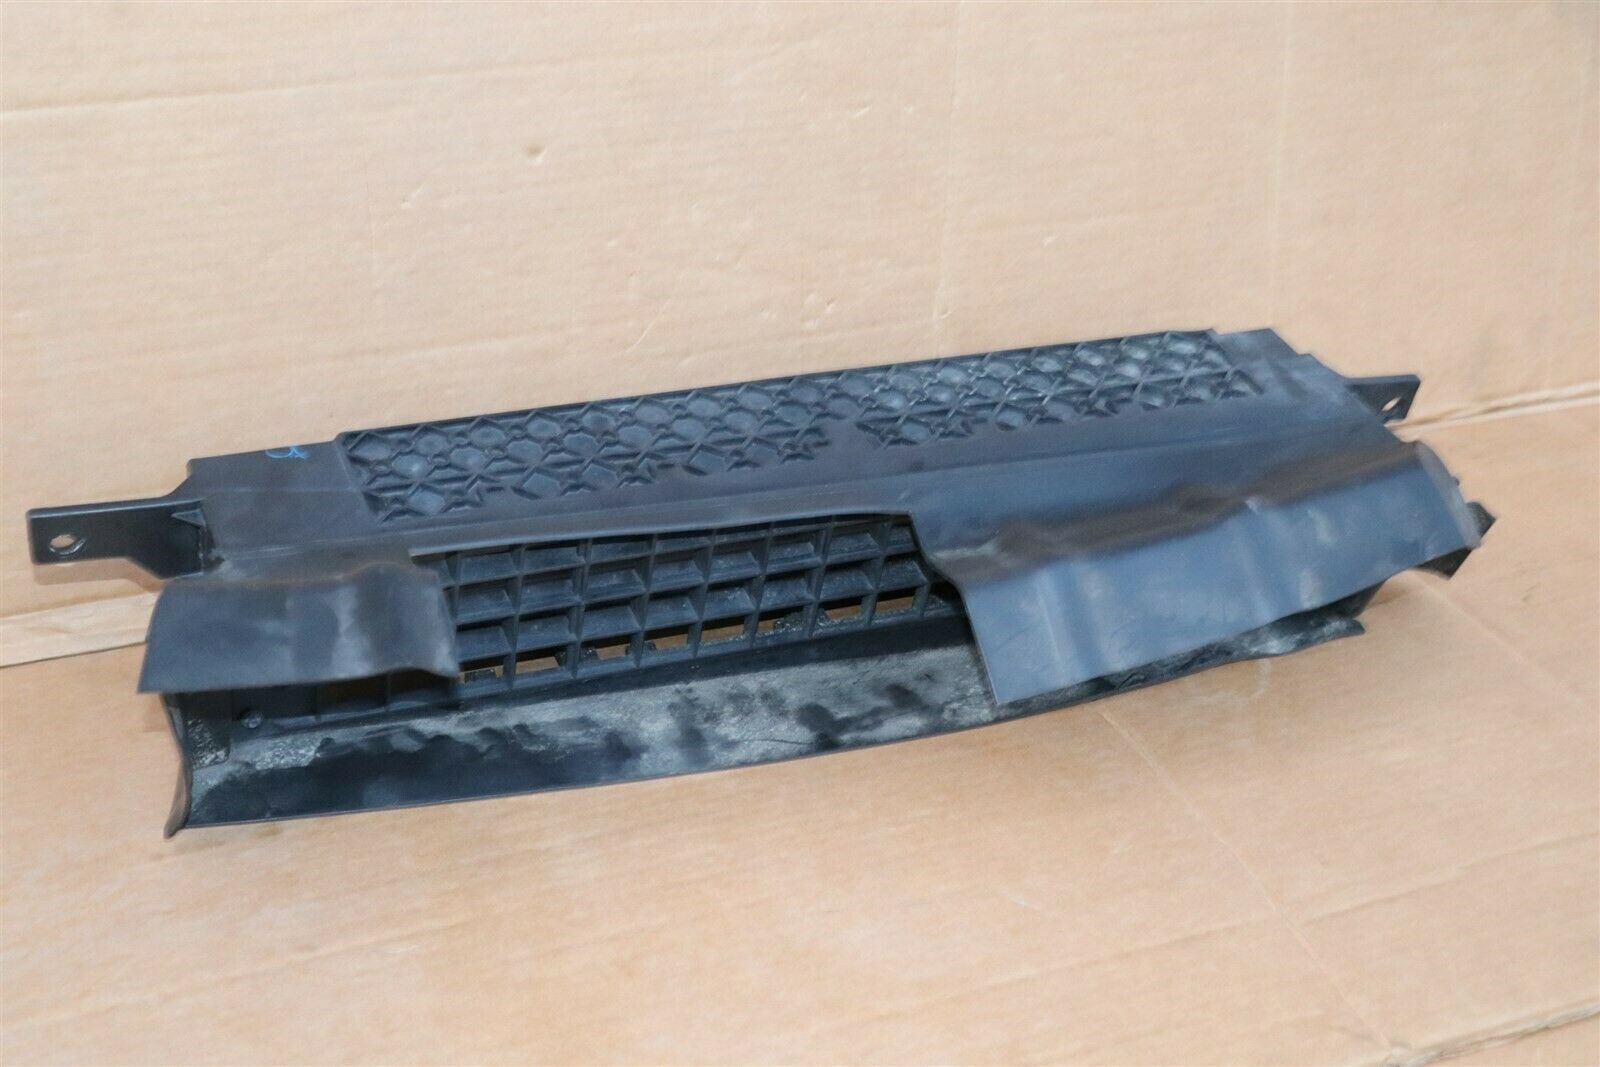 14-16 Nissan Versa Note Front Grill Radiator Cooling Active Shutters 21421-3VY0A